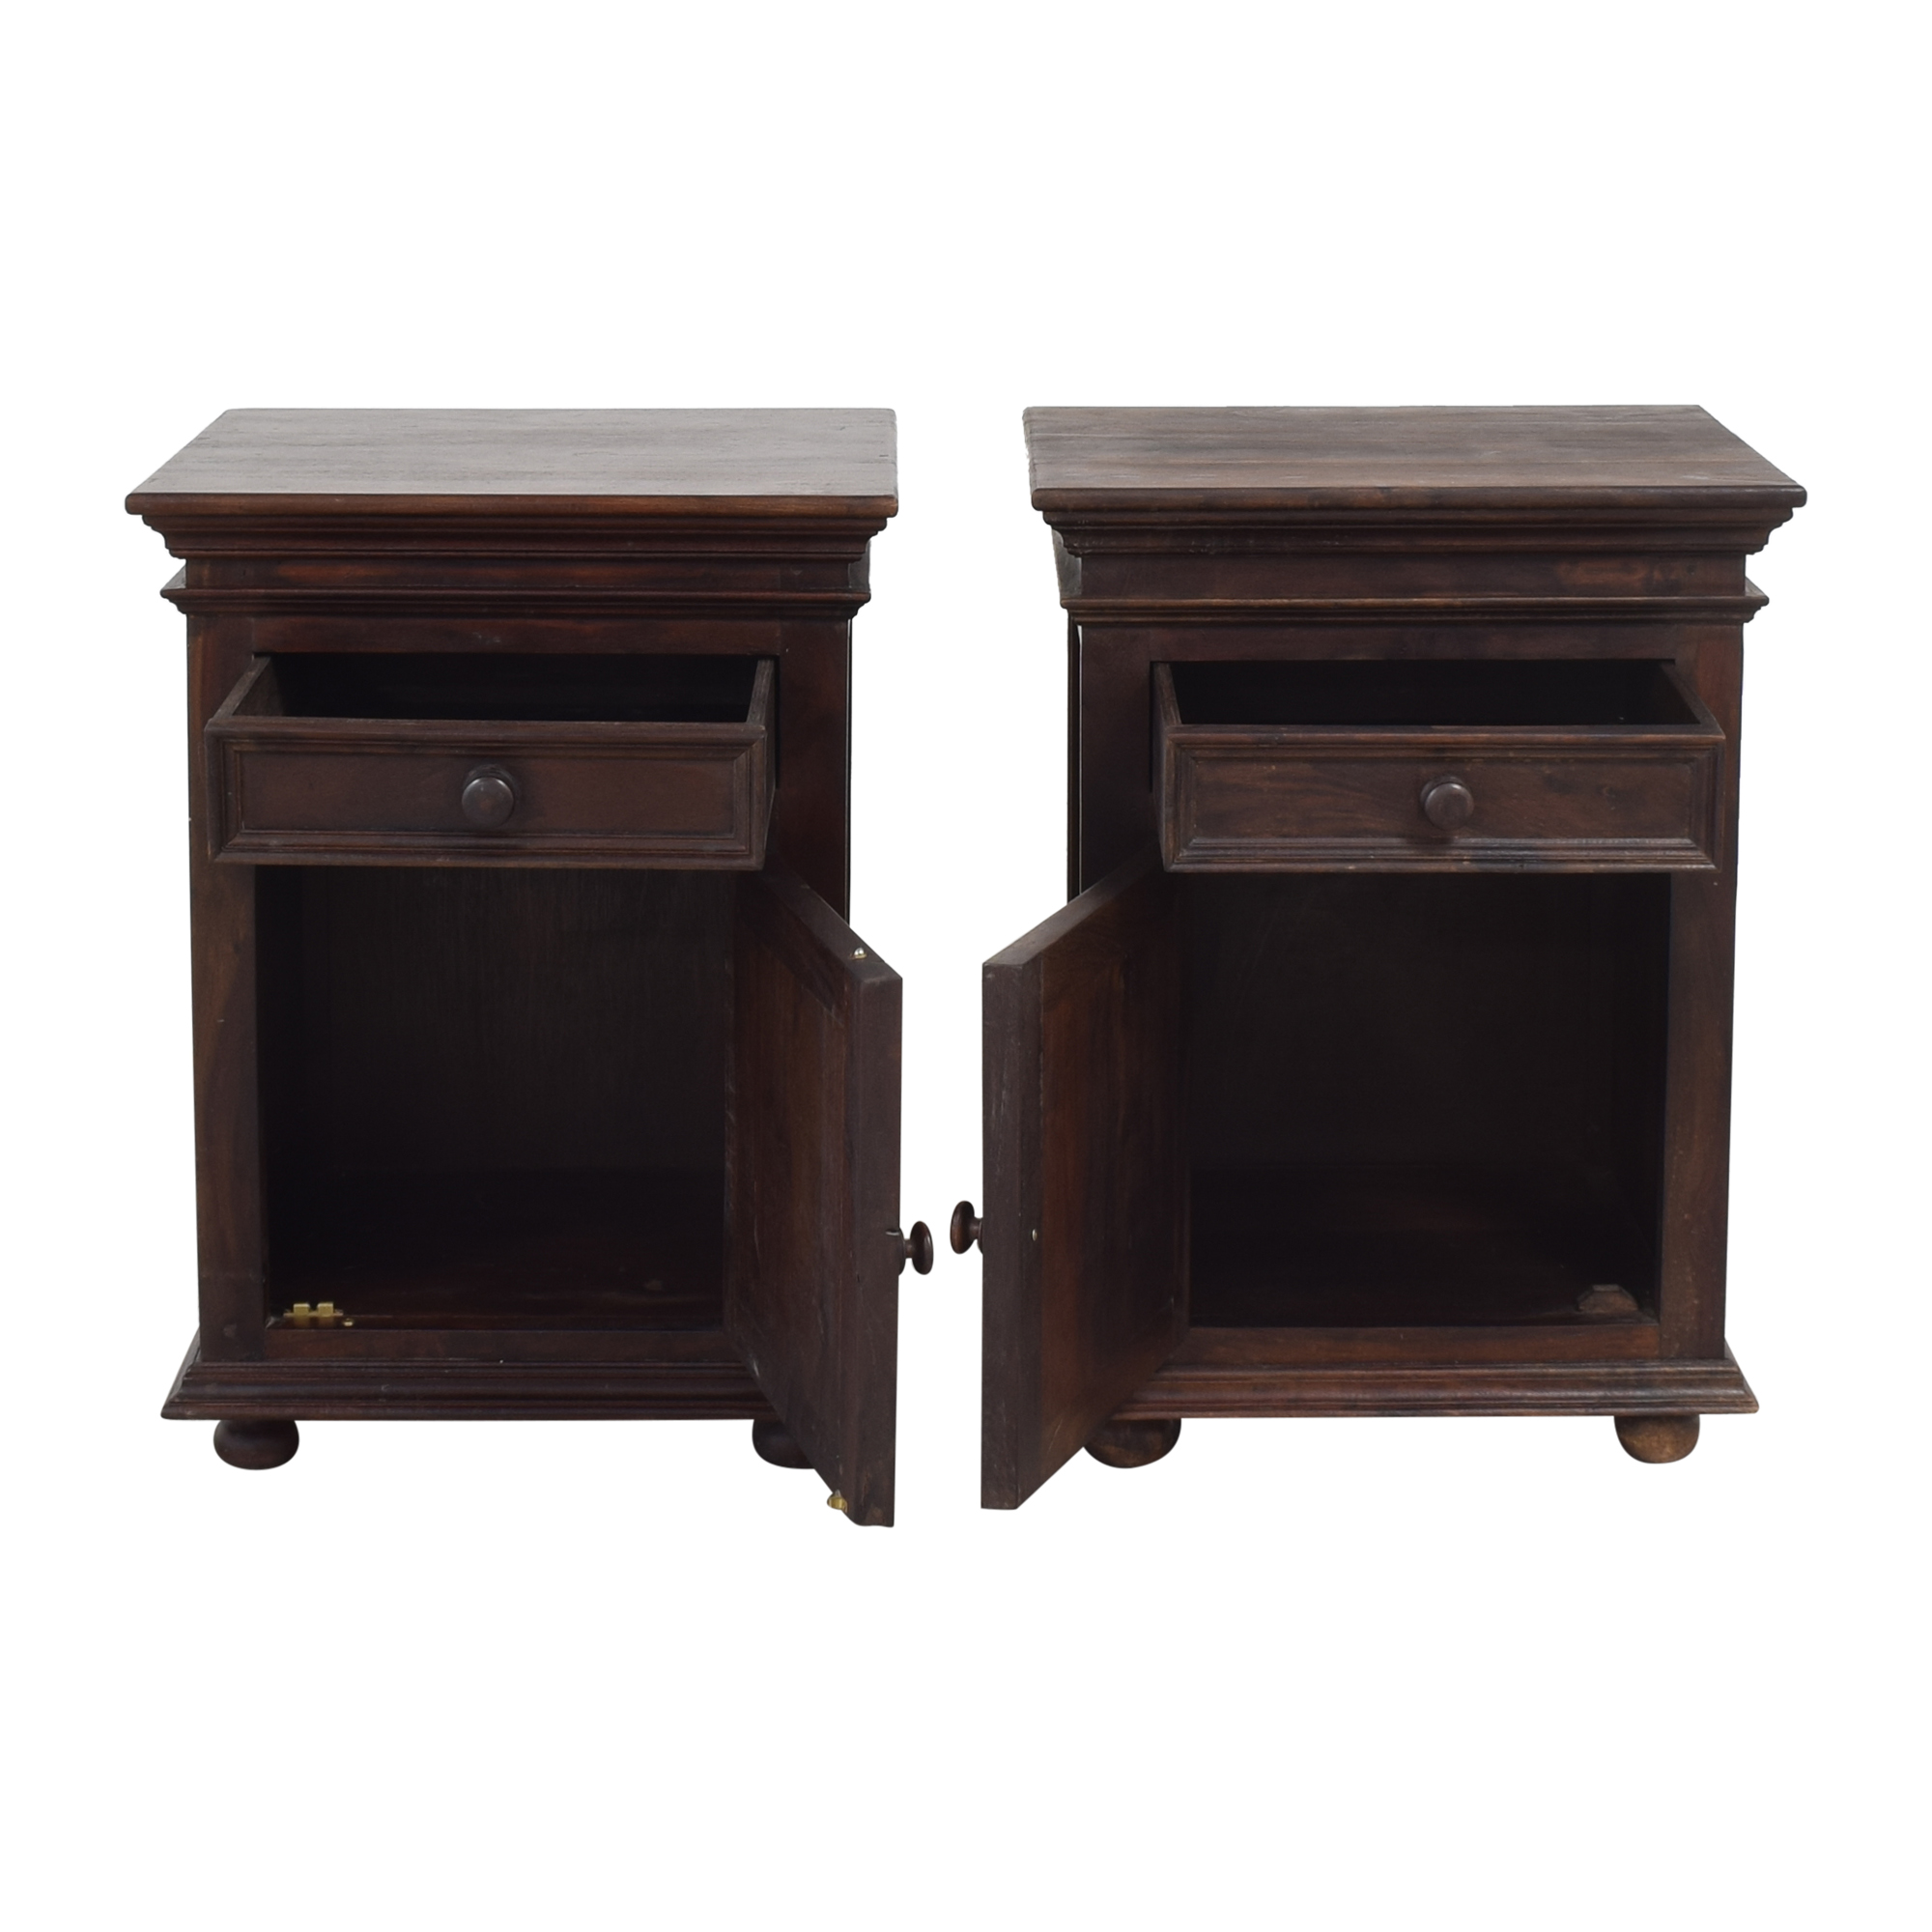 Single Drawer Nightstands Tables